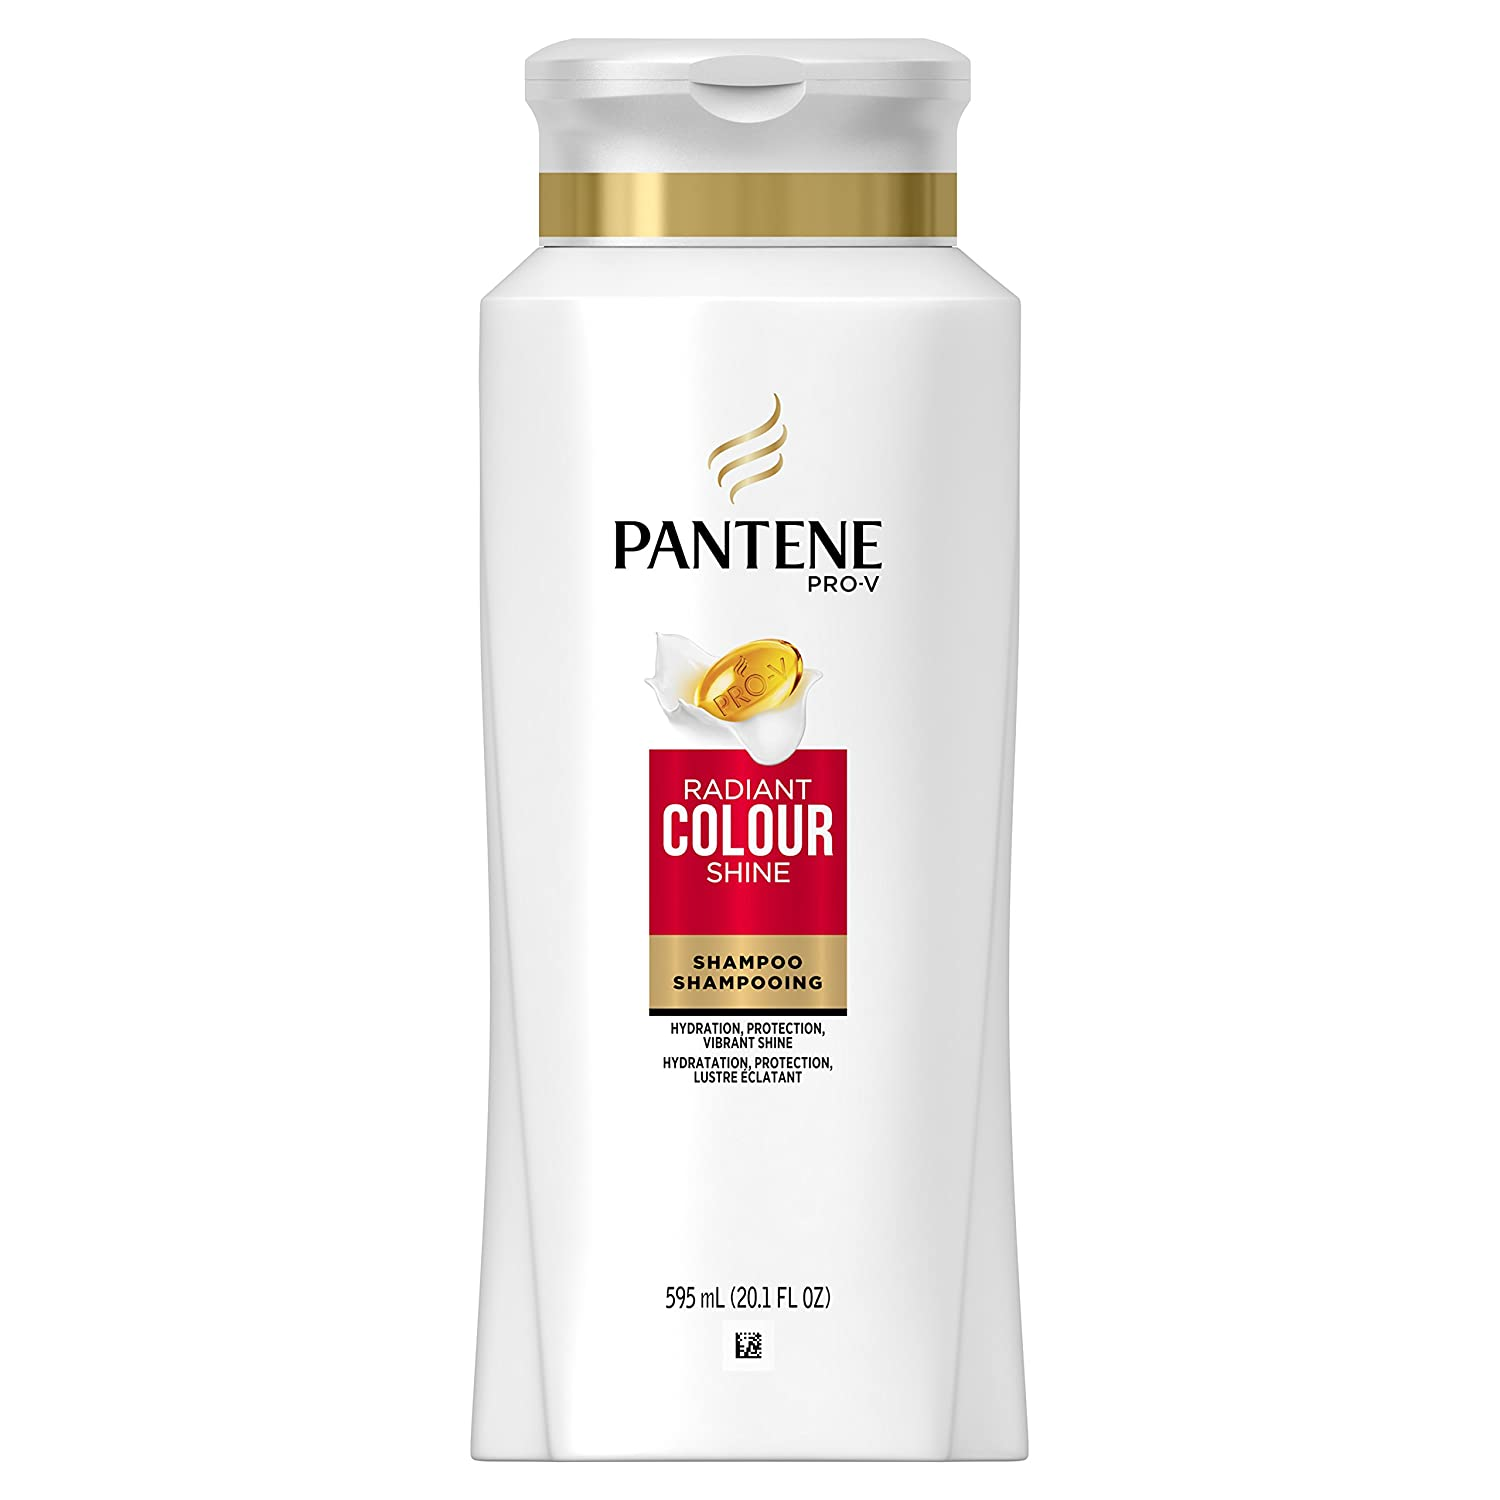 Pantene Pro-V Radiant Colour Shine Shampoo, 595 mL, packaging may vary Procter and Gamble